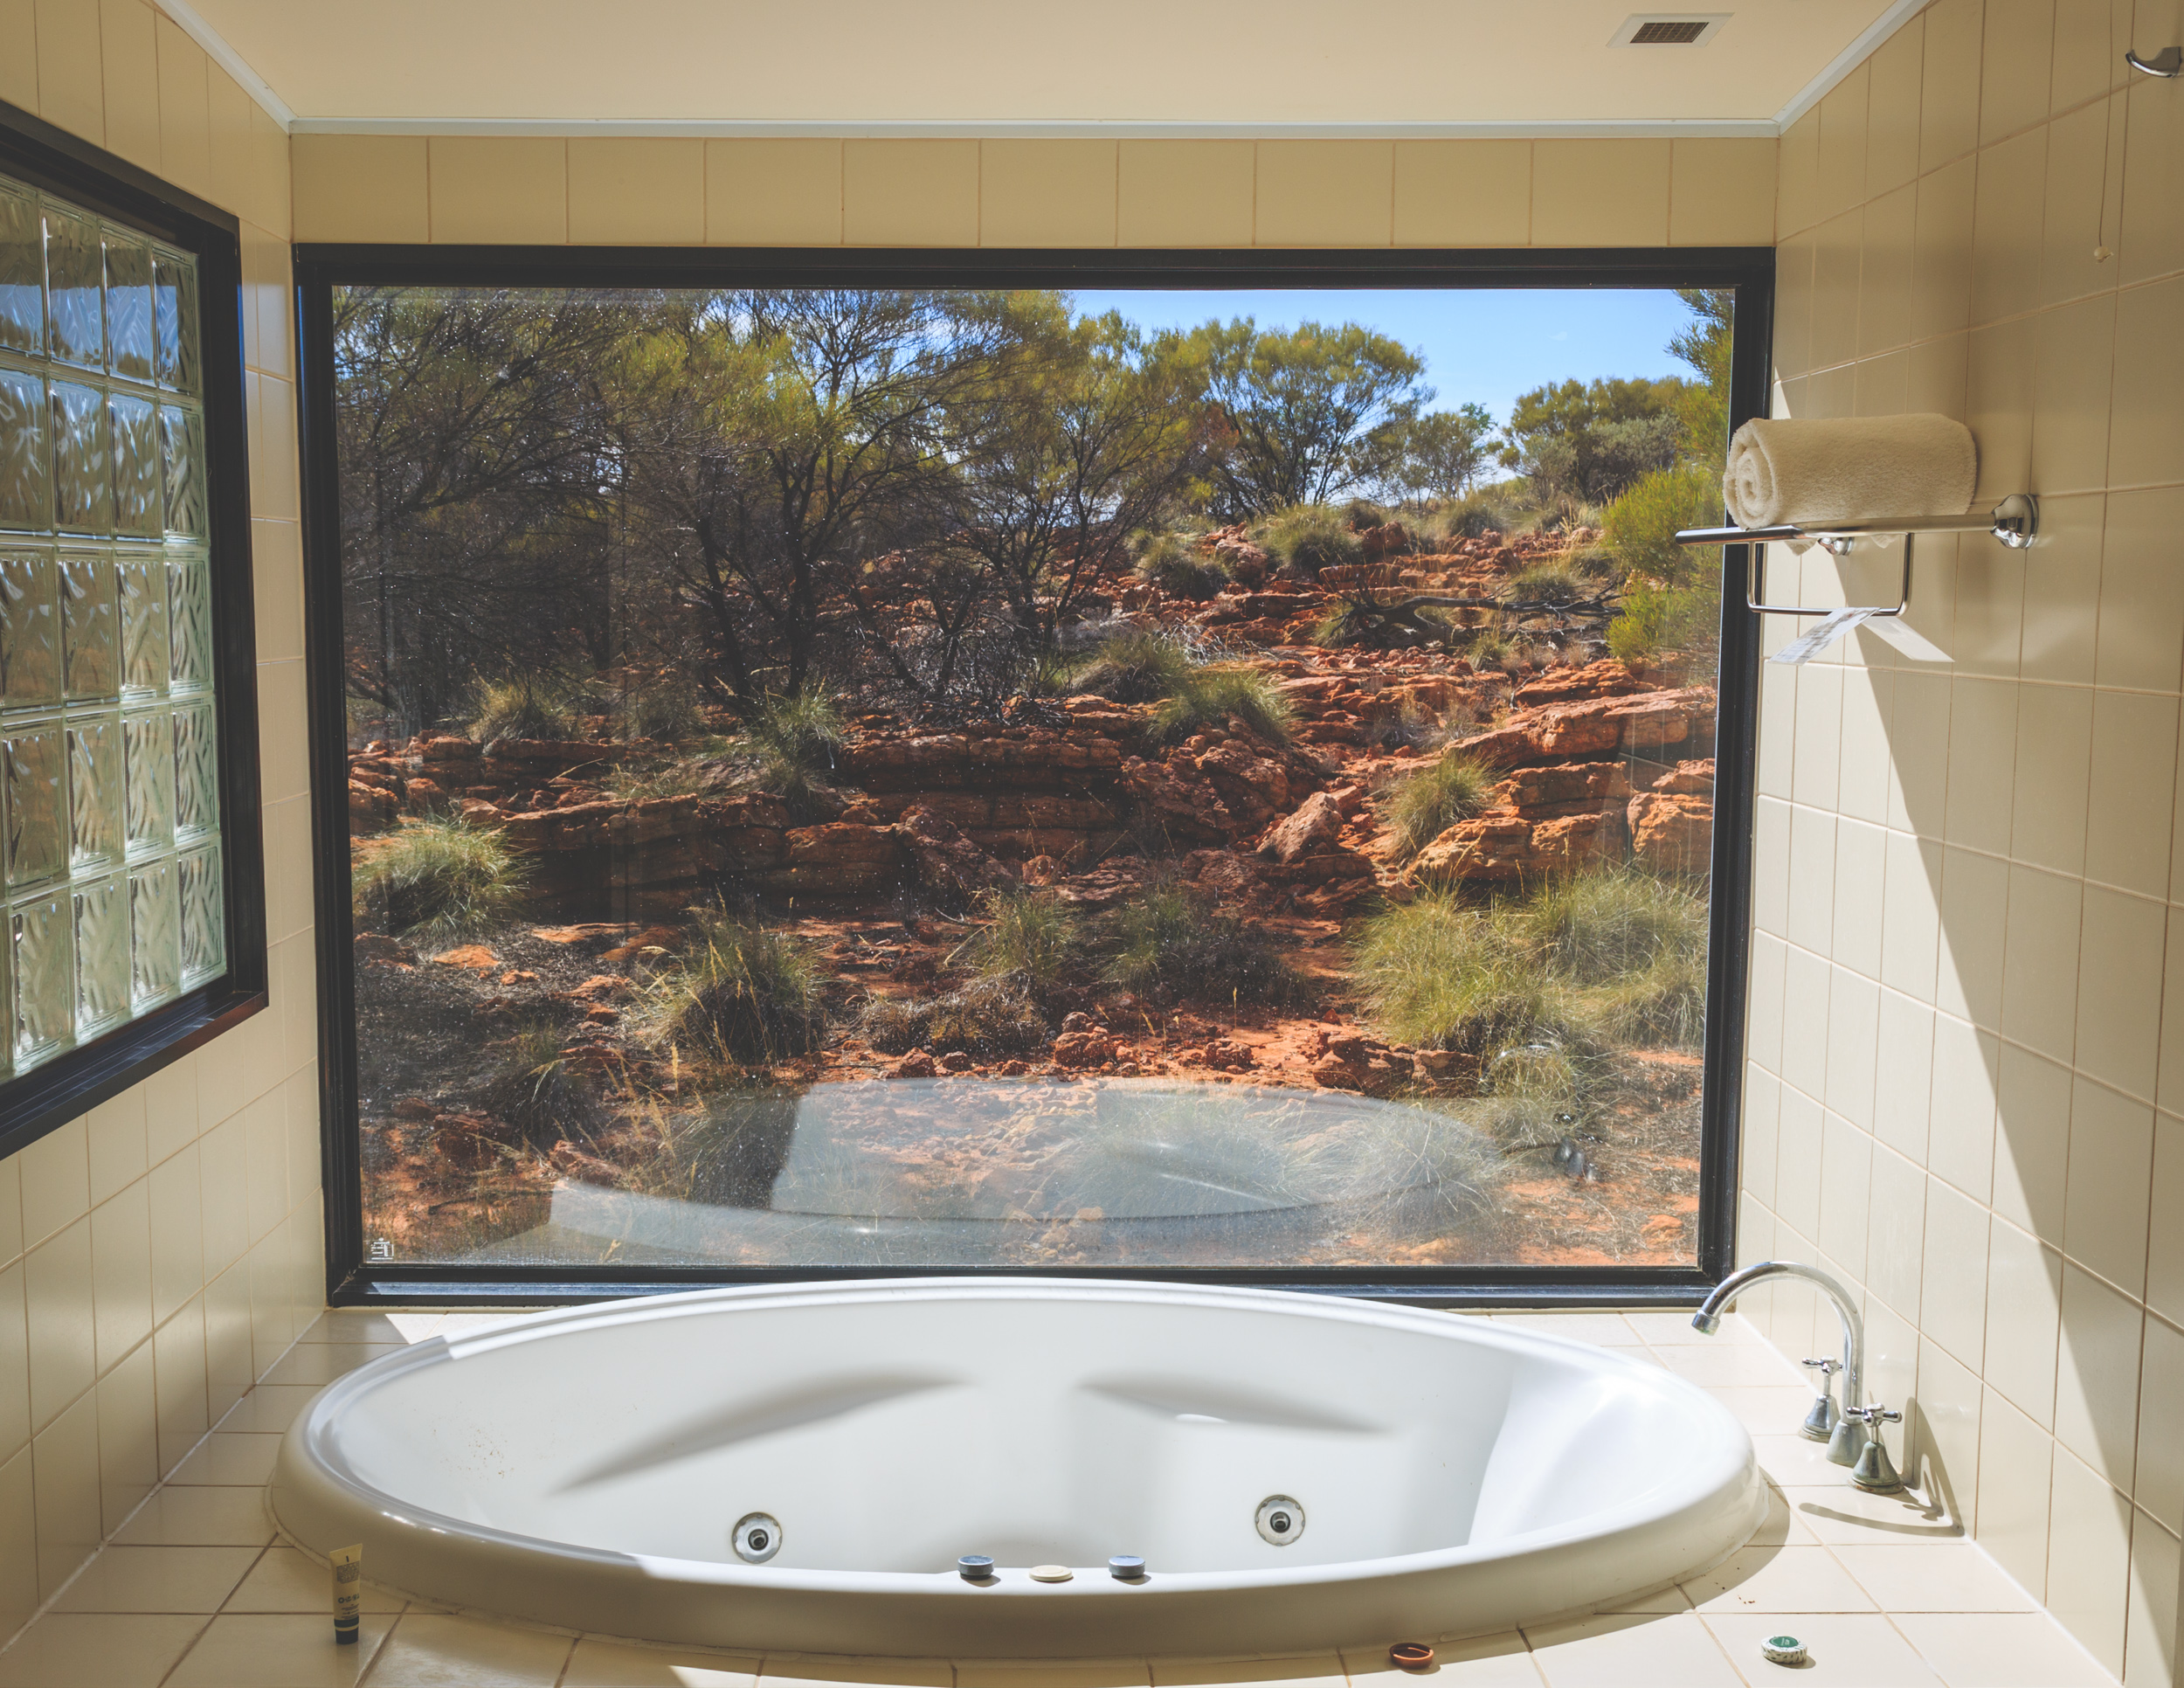 3 Week itinerary of Australia: Outback Jacuzzi